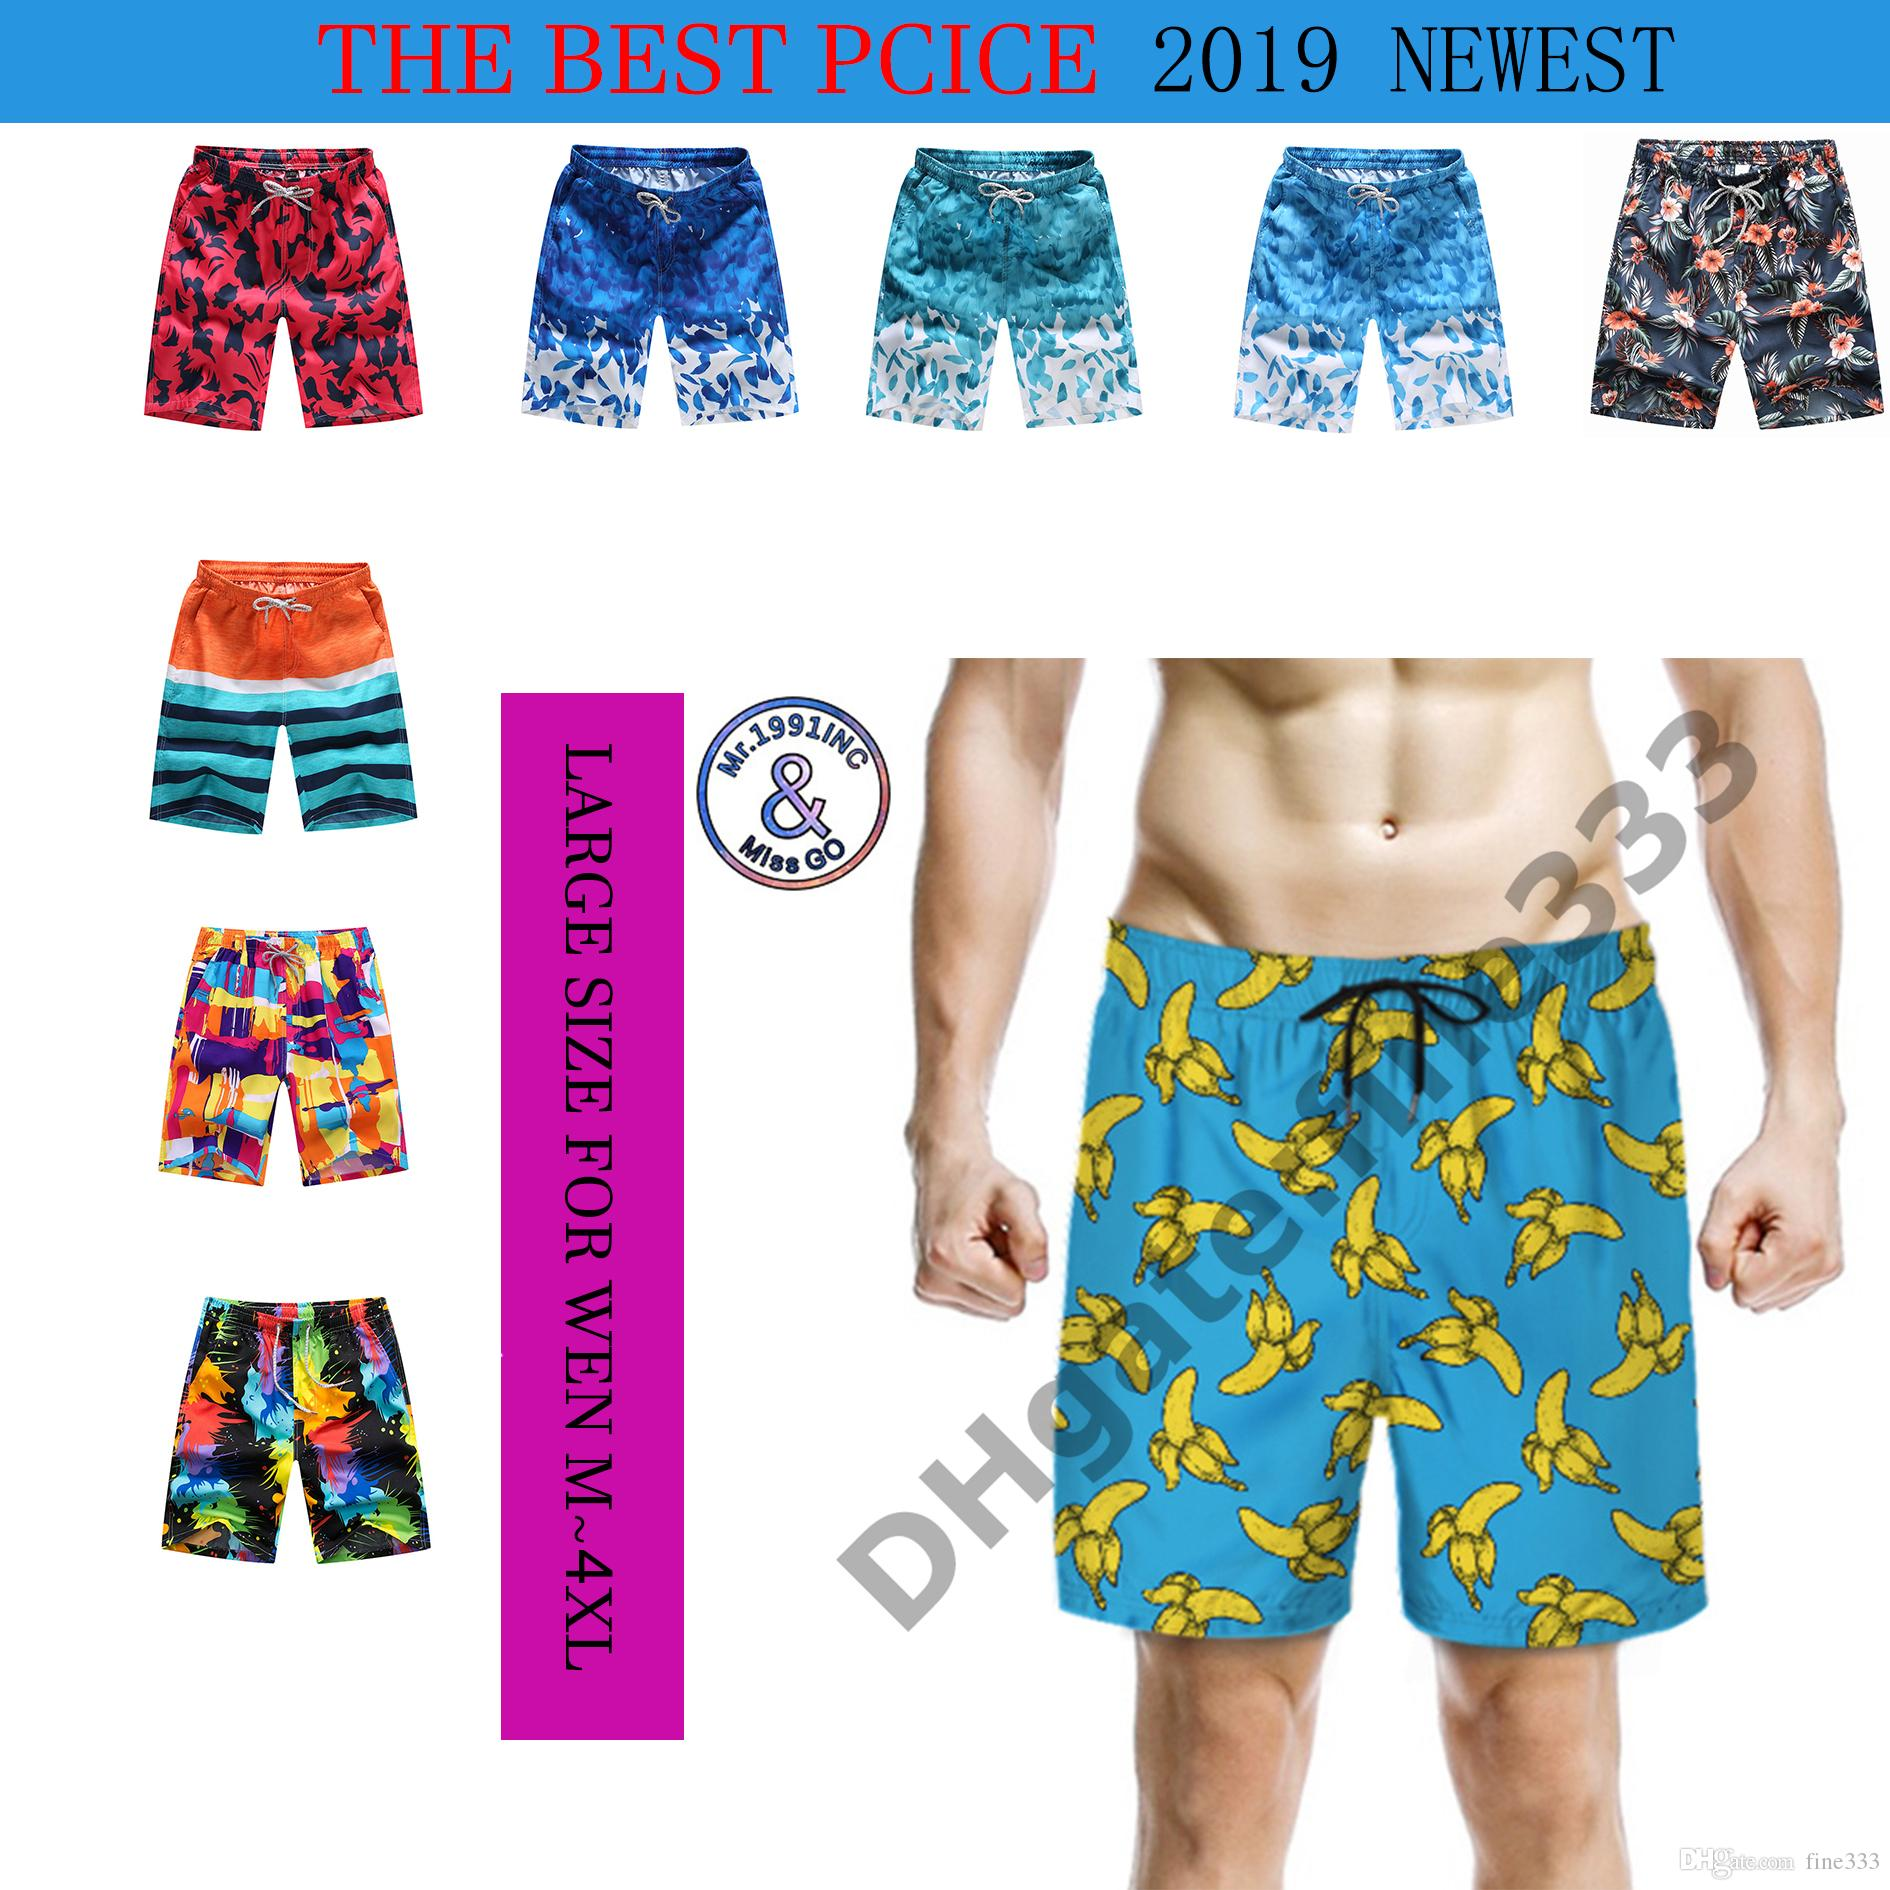 Summer Shorts Beach Shorts For Wen and Kids Extra Karge Size M to 4XL 3D Printing Beach Clothing Outdoor Shorts